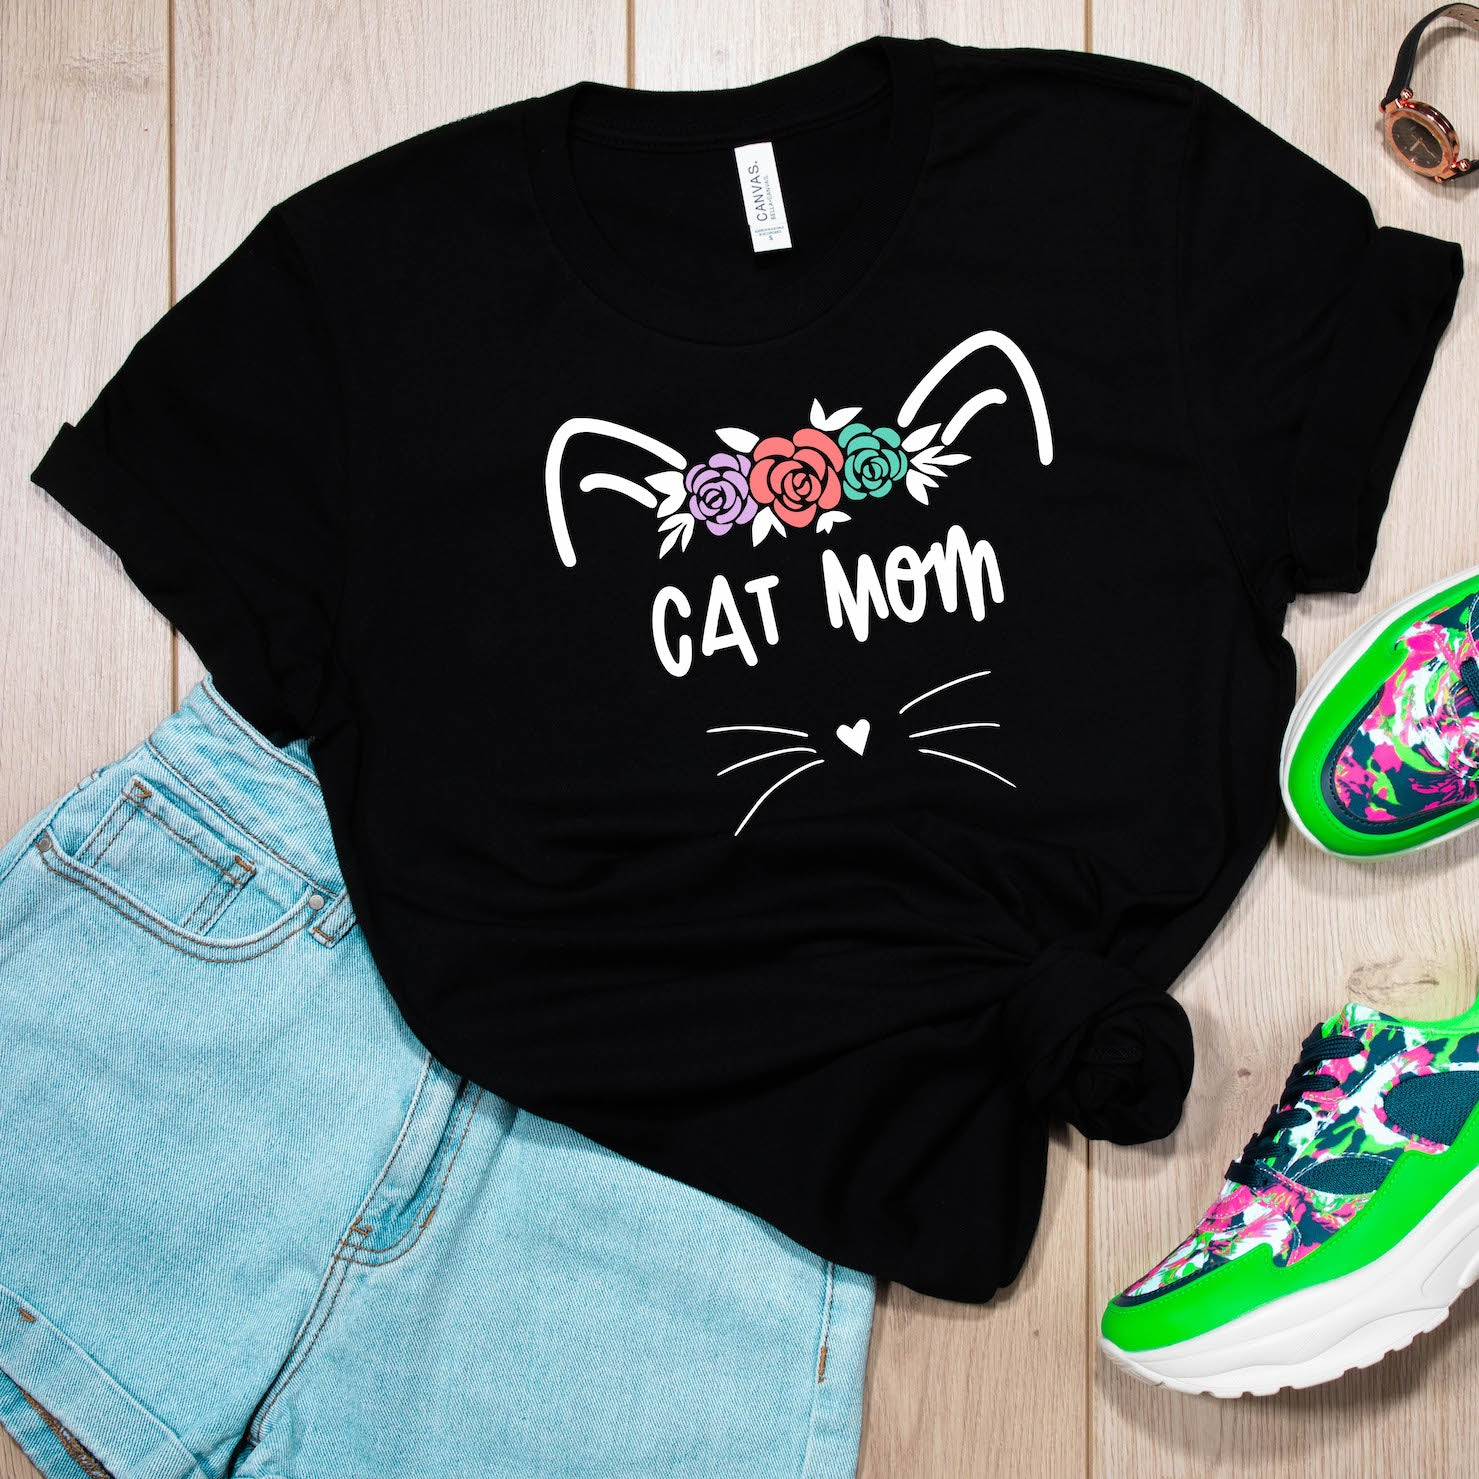 FUNNY CAT SHIRT, WOMEN MEN, CAT LOVER GIFT, CAT T-SHIRT, CUTE CAT GRAPHIC, EXPLORE NOW!